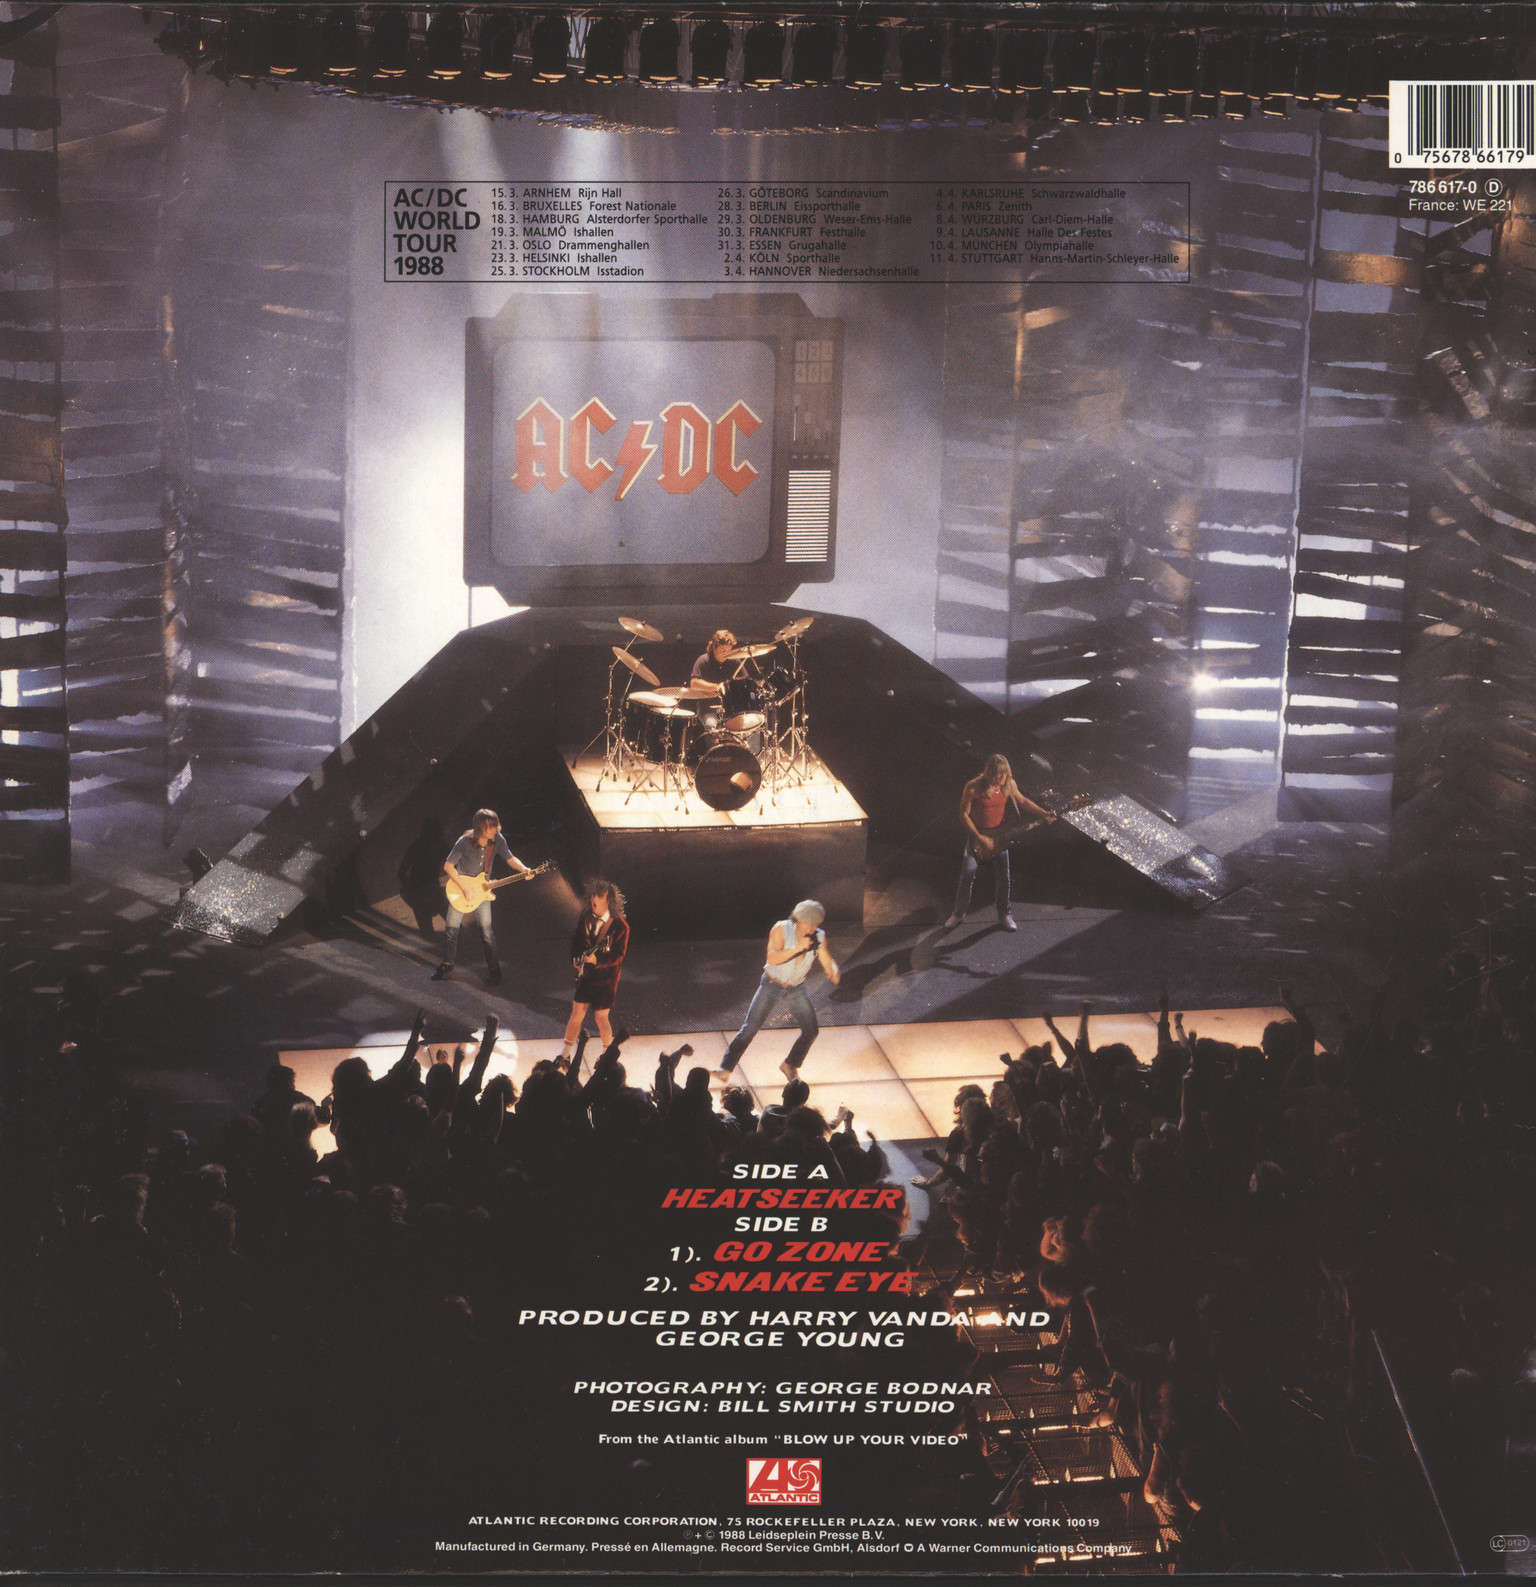 "AC/DC: Heatseeker, 12"" Maxi Single (Vinyl)"